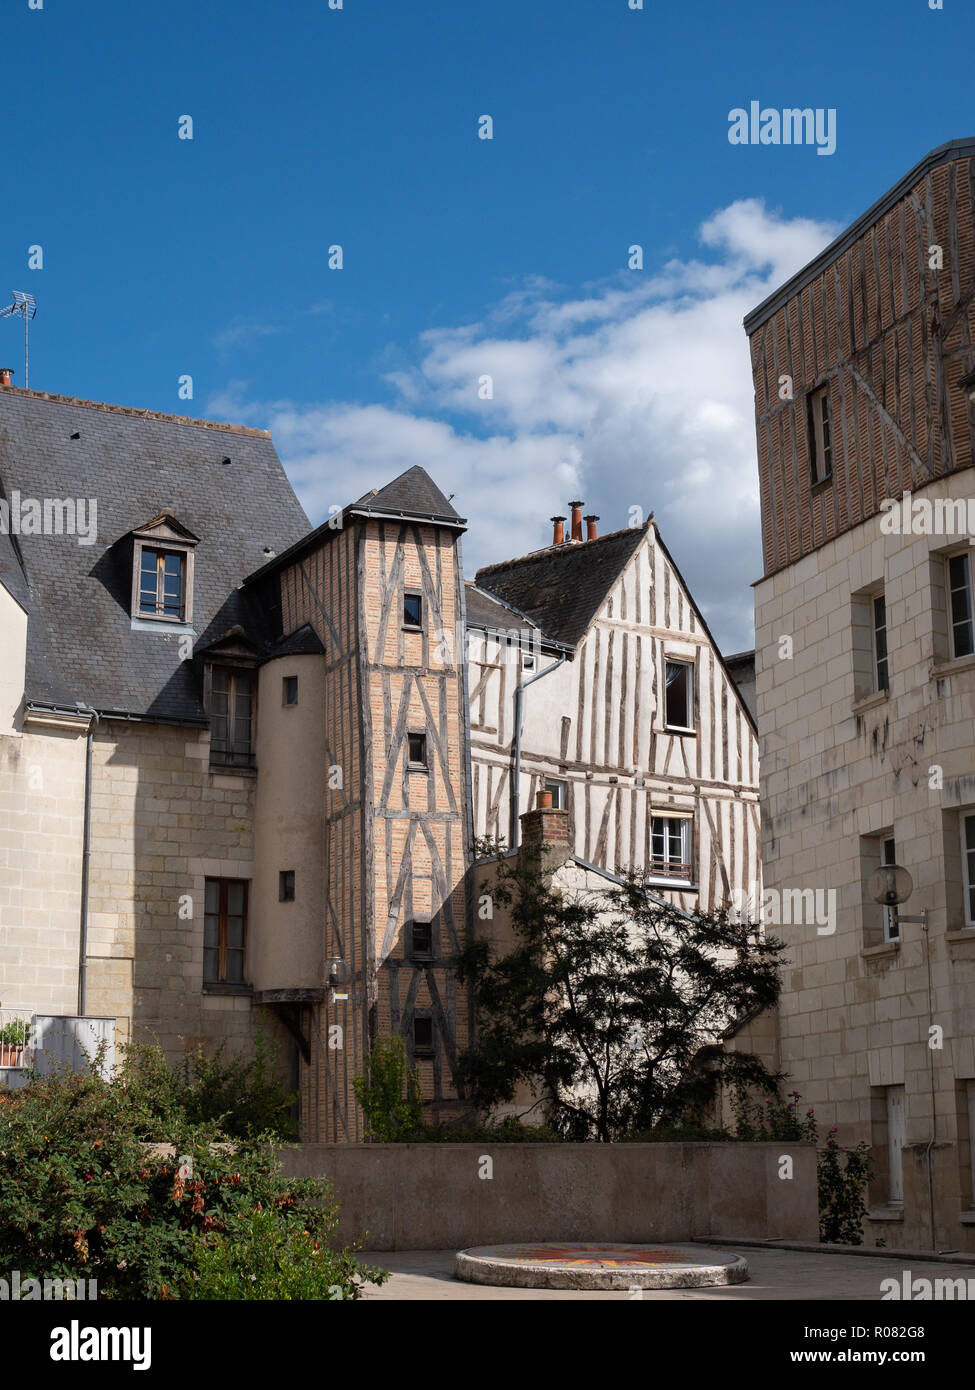 Street of the city of Tours, in the center of France. Summer. Stock Photo